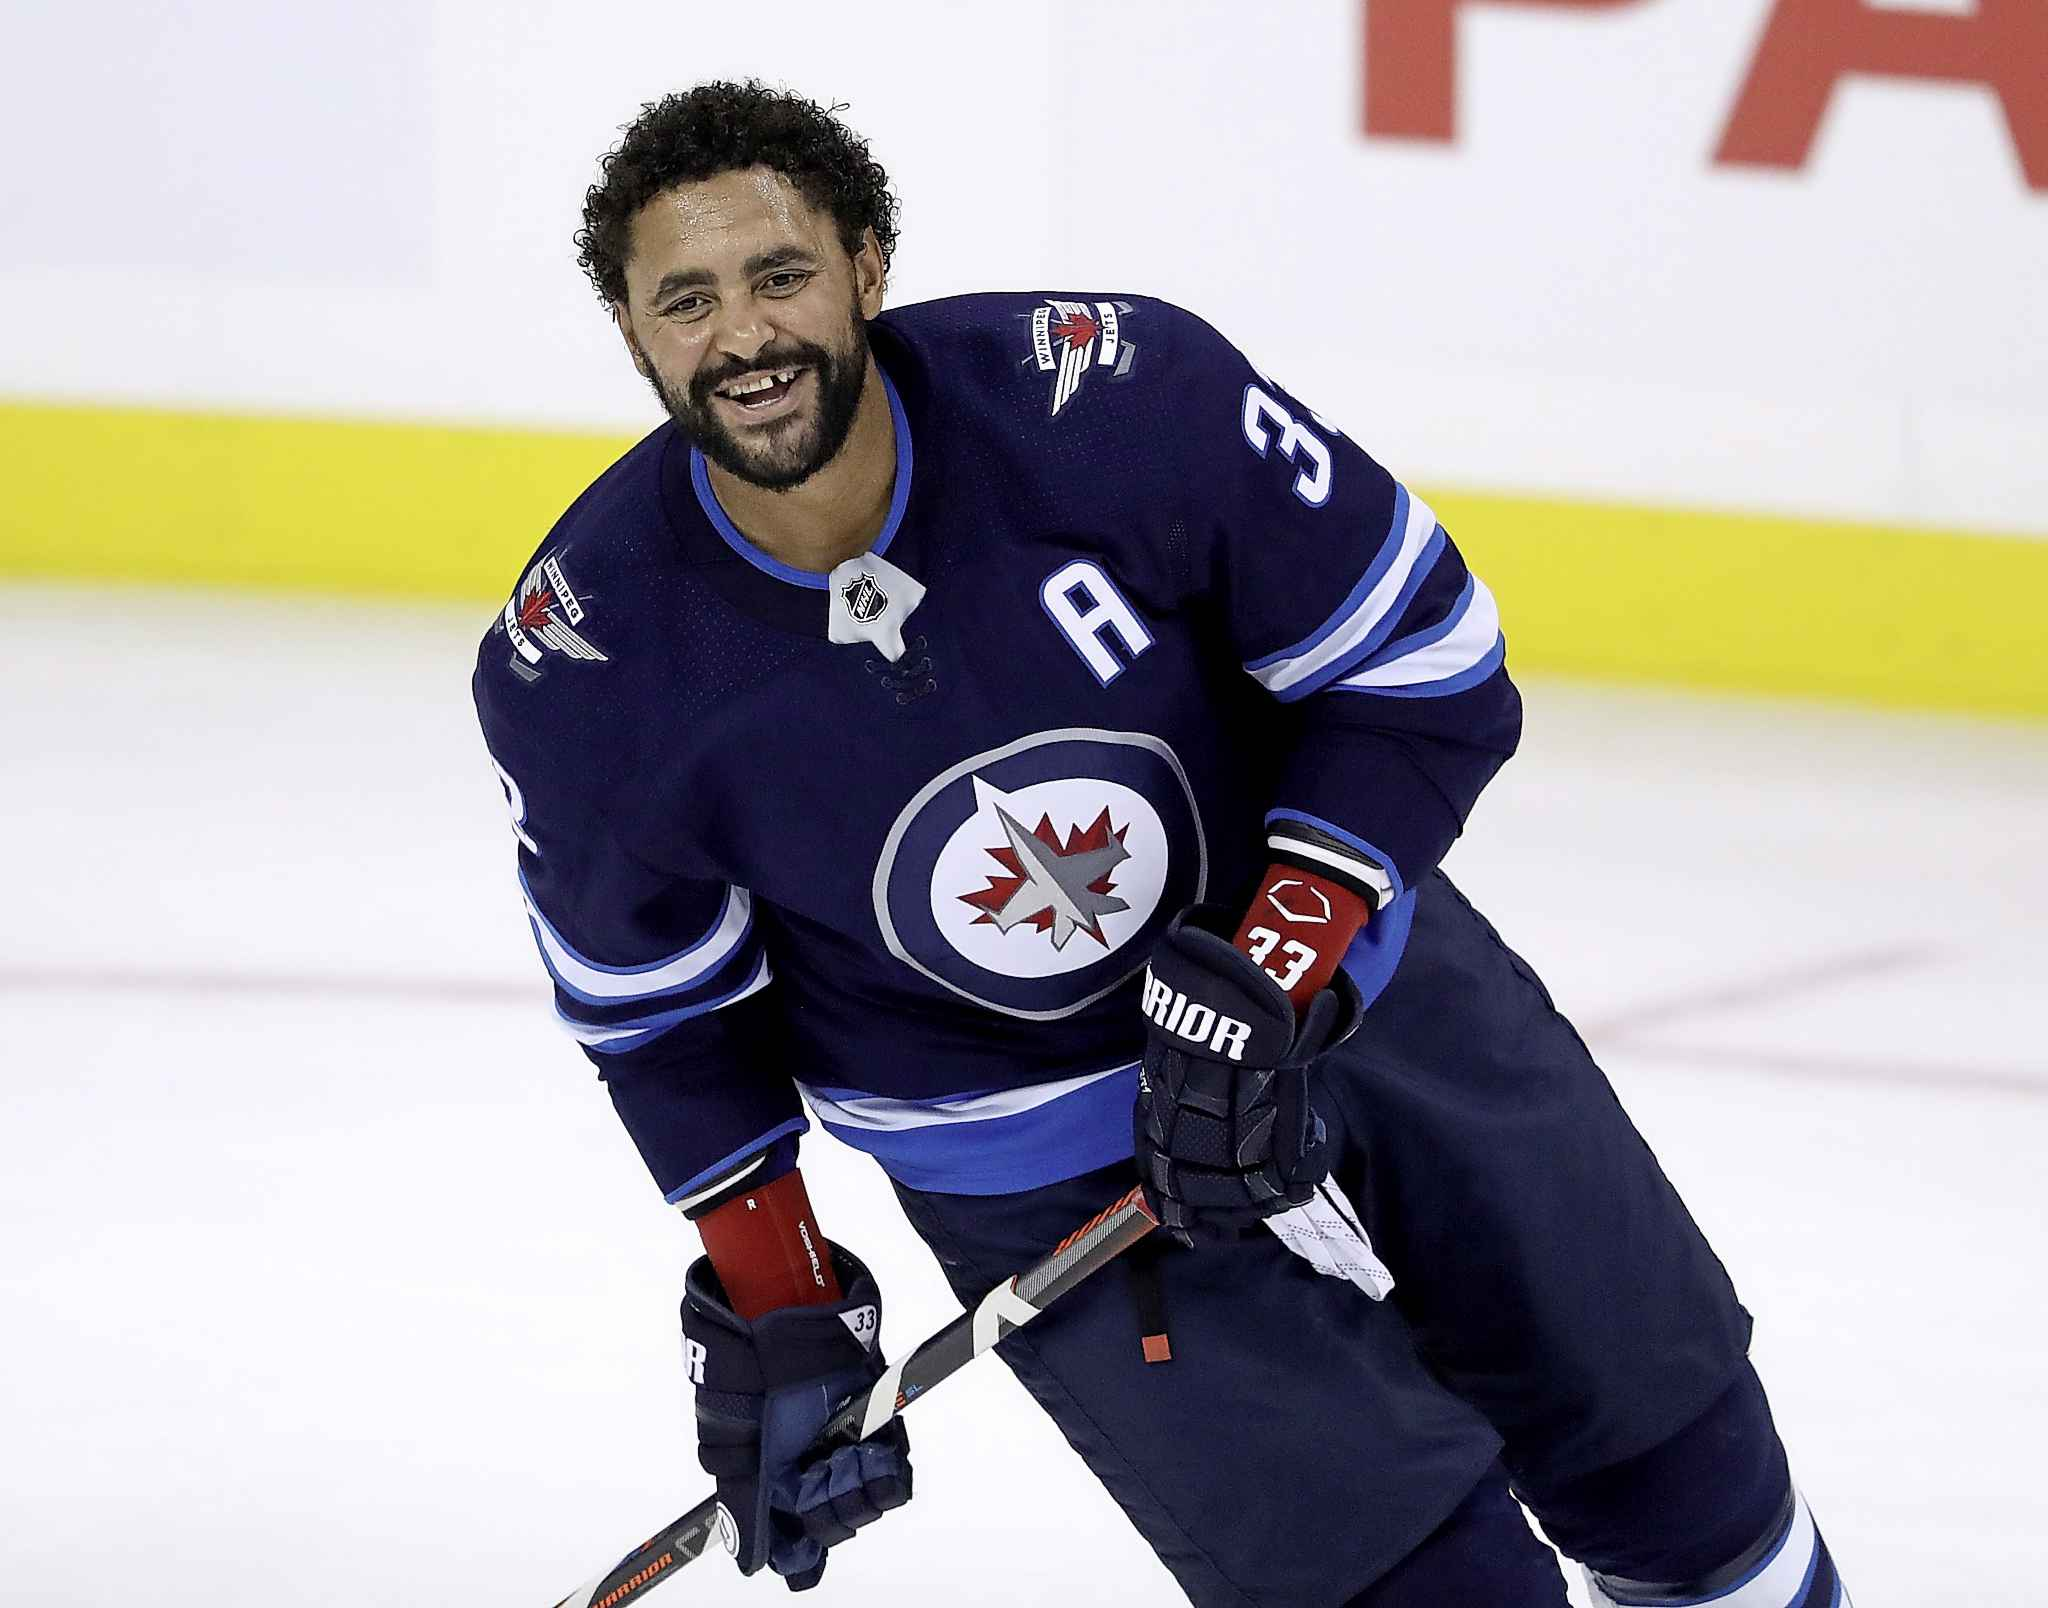 Dustin Byfuglien has started a post-surgery rehabilitation program in consultation with the Jets that brings him closer to a potential on-ice return with the team later this season, the Free Press has learned. (Trevor Hagan / Free Press files)